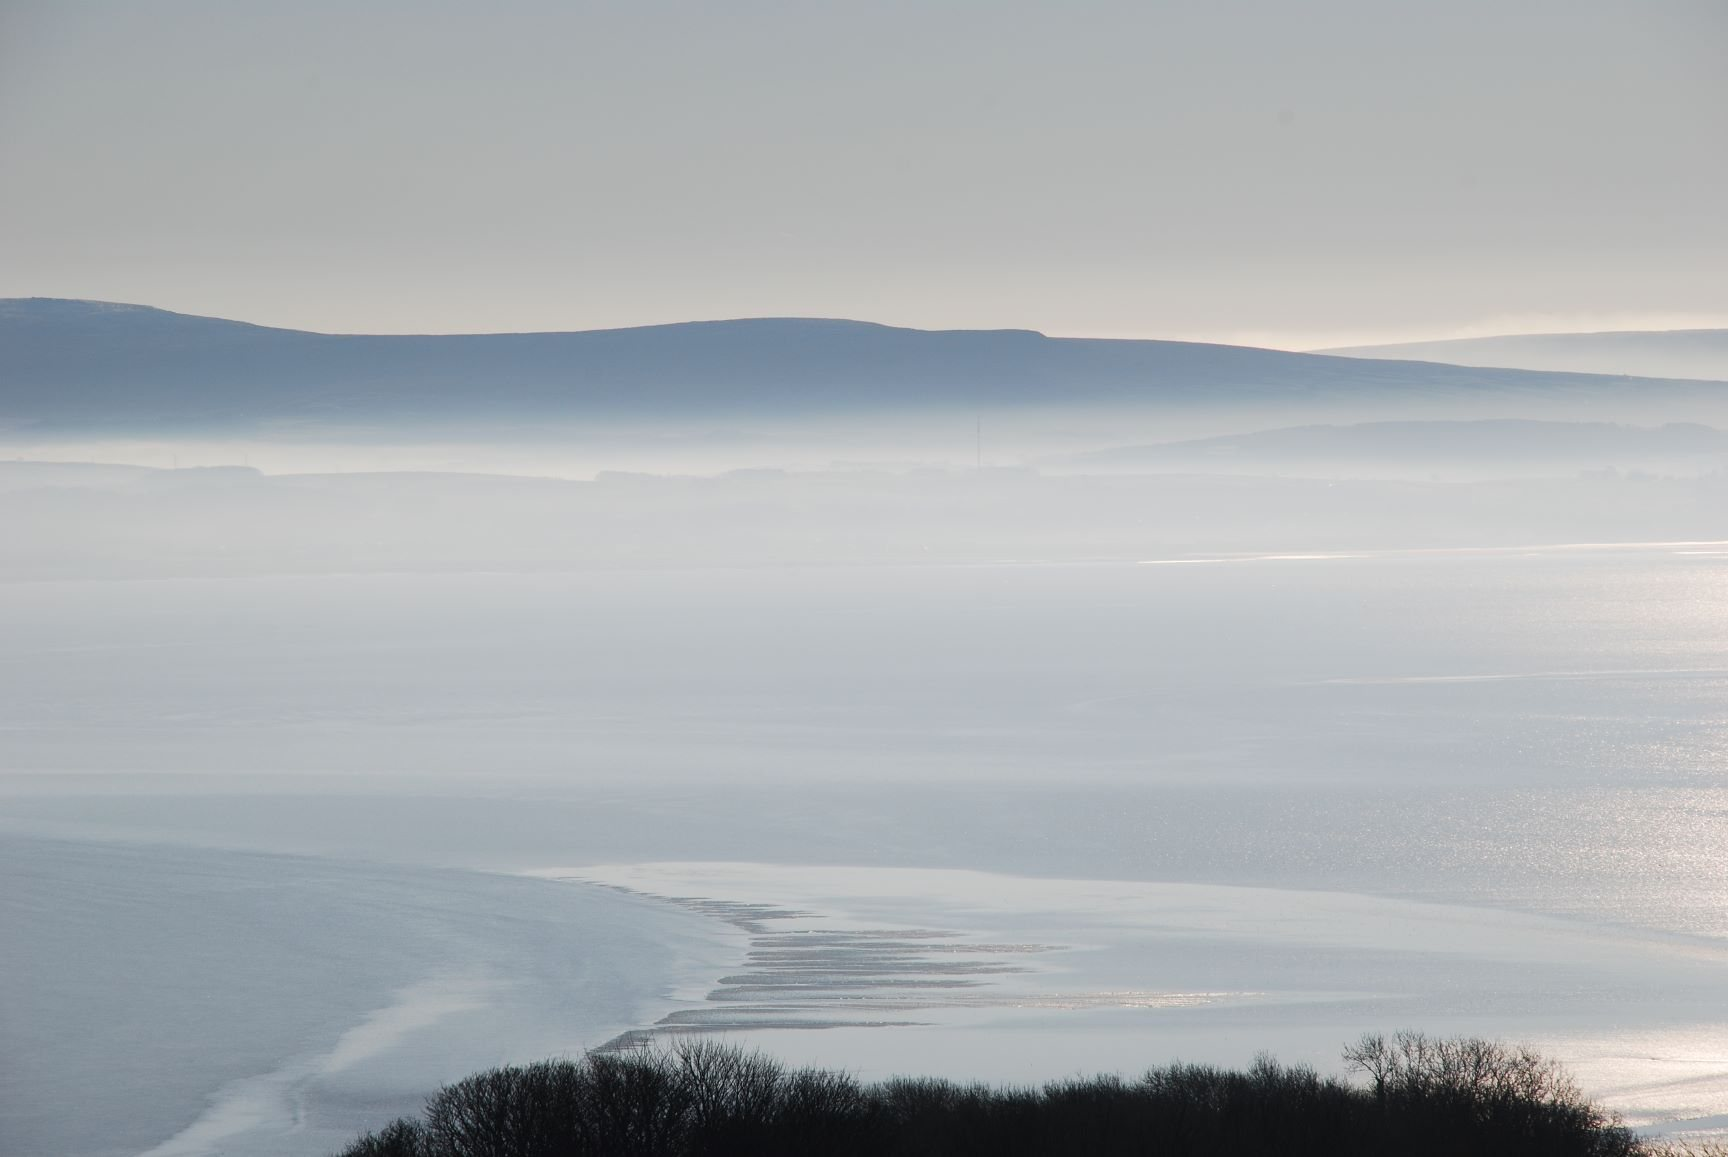 Misty Morecambe Bay